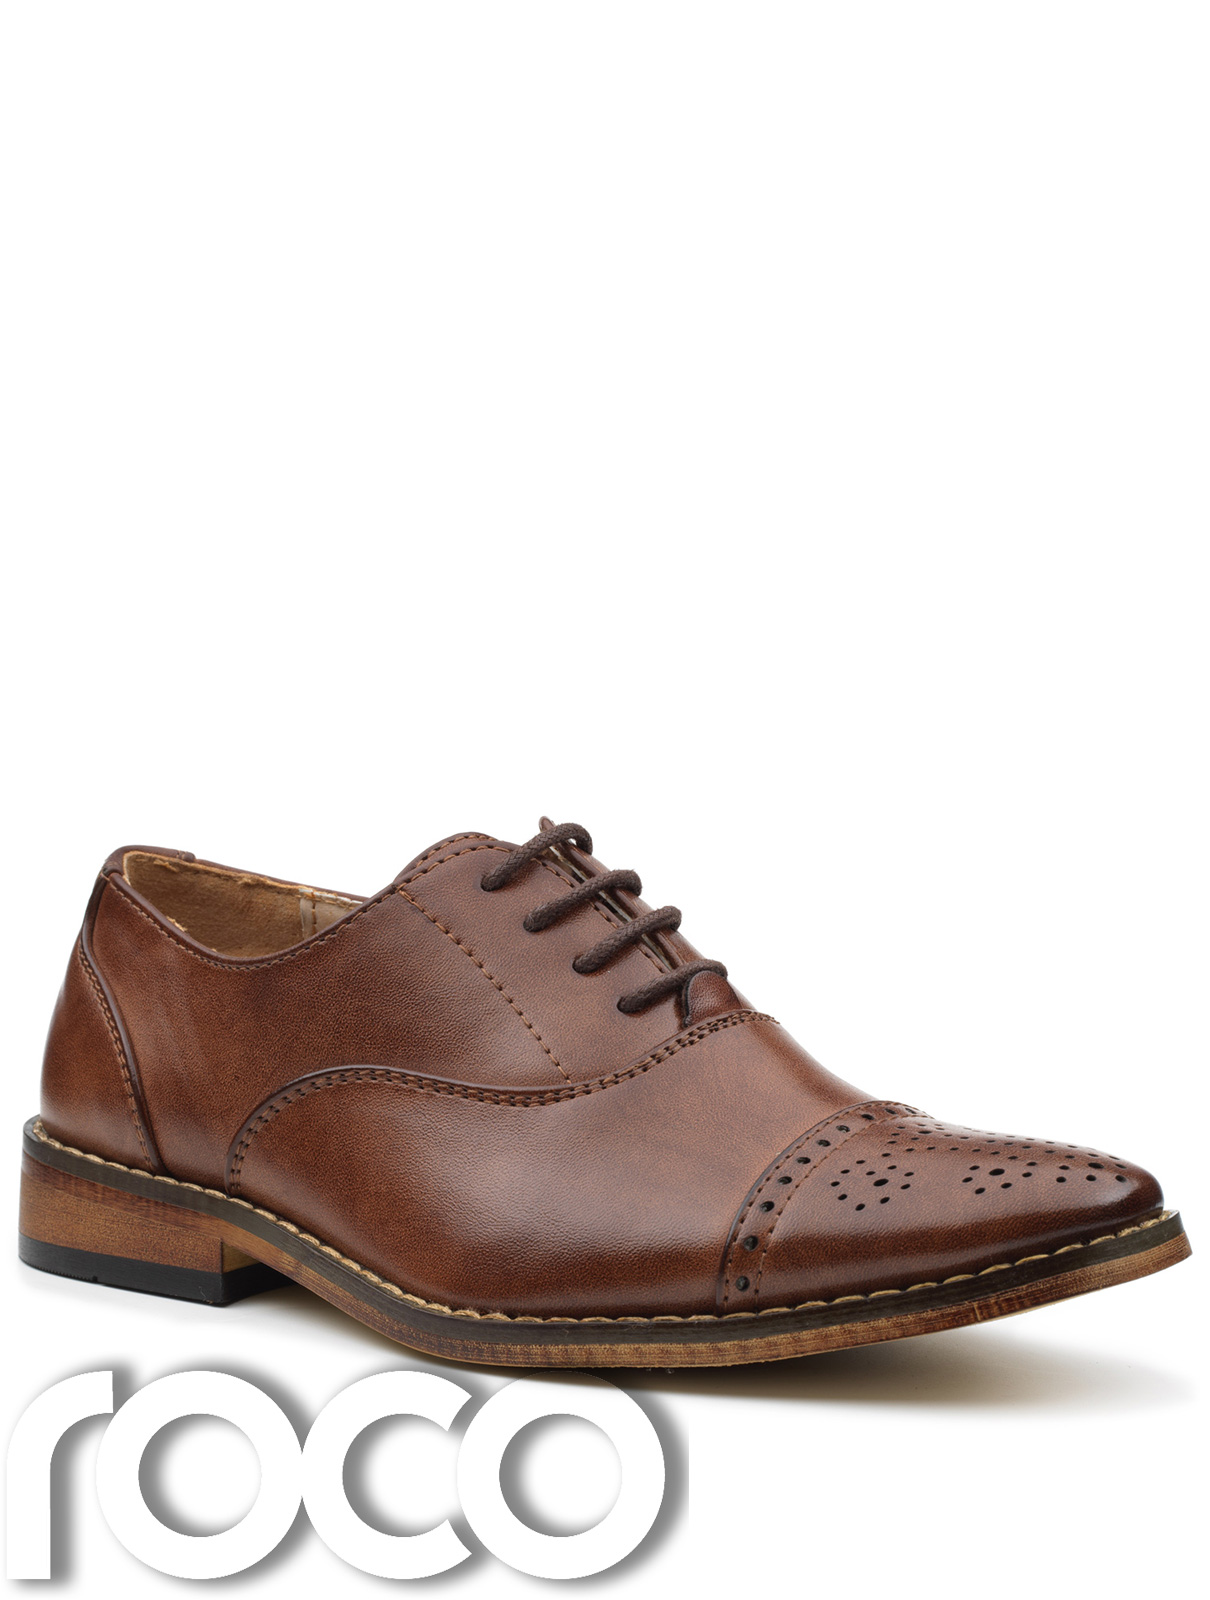 Free shipping BOTH ways on Oxfords, Boys, from our vast selection of styles. Fast delivery, and 24/7/ real-person service with a smile. Click or call